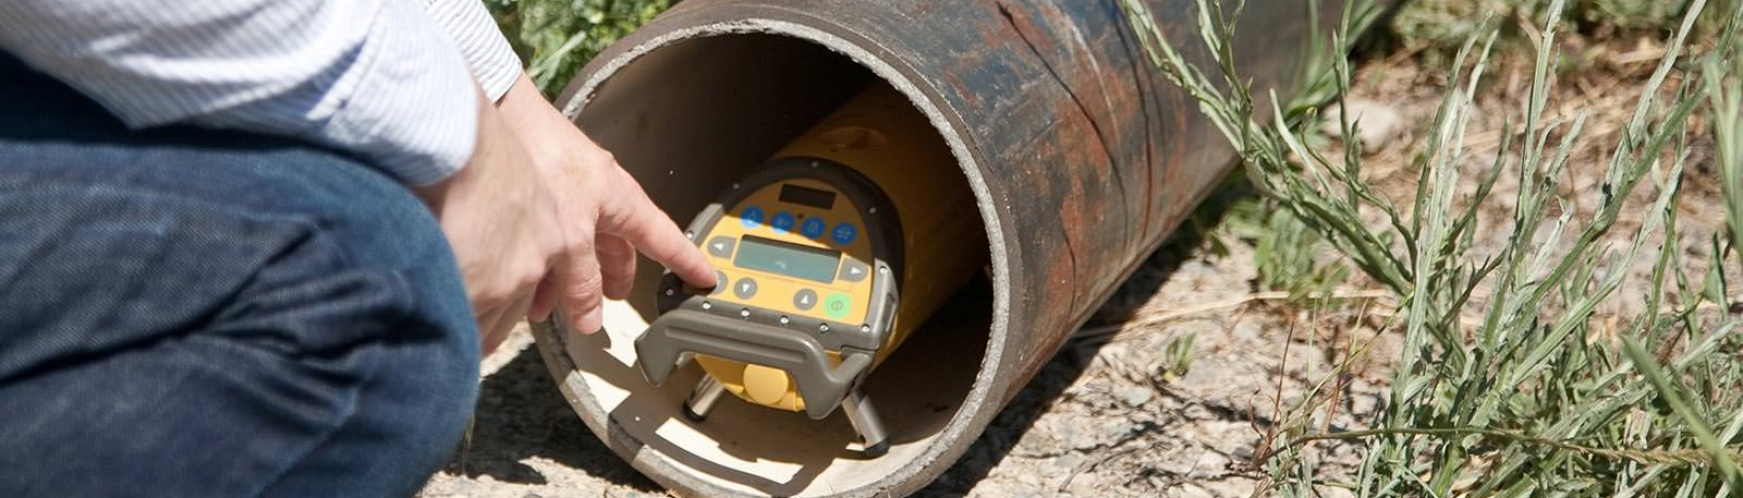 Utility/Underground | Topcon Positioning Systems, Inc